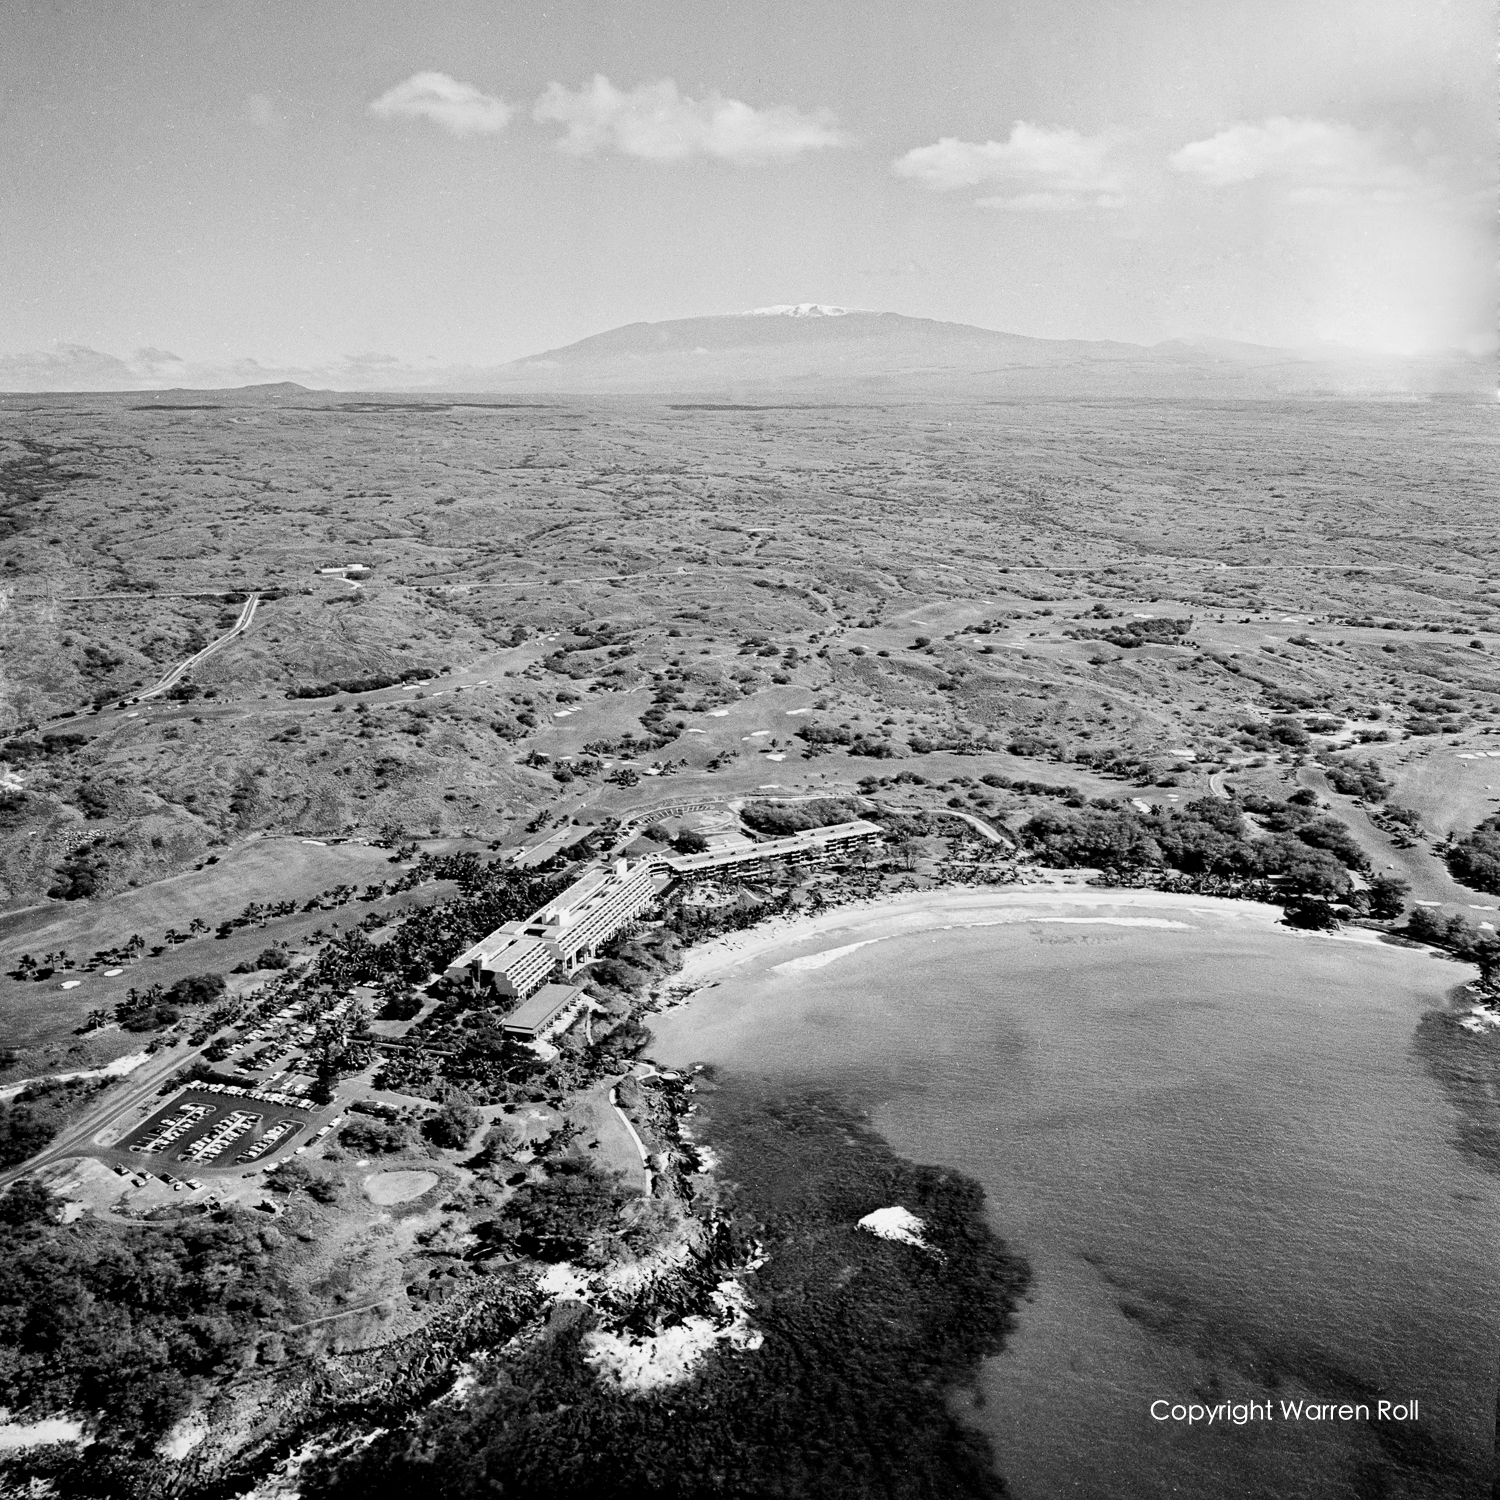 Mauna Kea Beach Hotel, 1968 by Warren Roll/Star-Bulletin